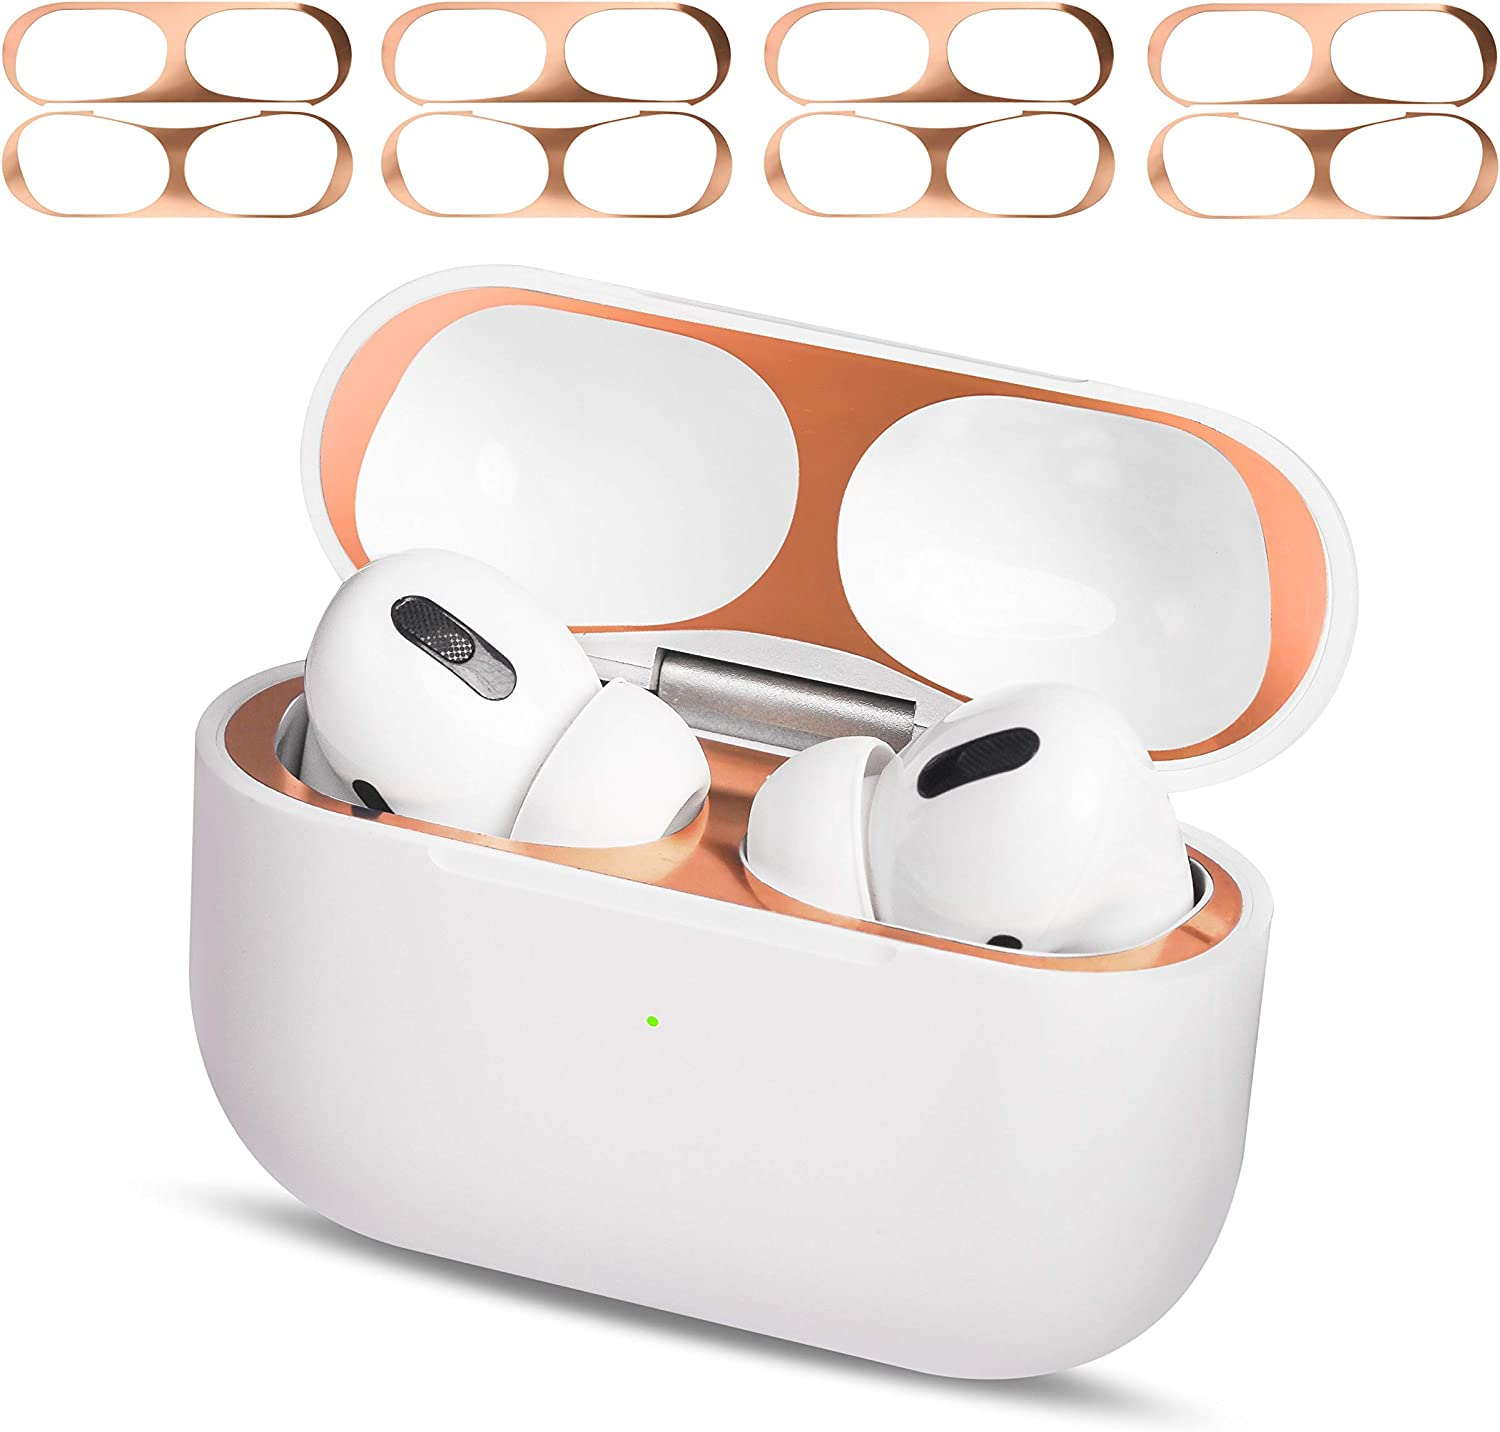 MioHHR AirPods Pro Dust Guard Clear 4 Set, Metal Dust Cover for Apple Airpod Pro Protector Sticker, Airpods 3 Dust Proof Film Accessories for Wireless Charging Case, Ultra Slim Luxurious Rose Gold